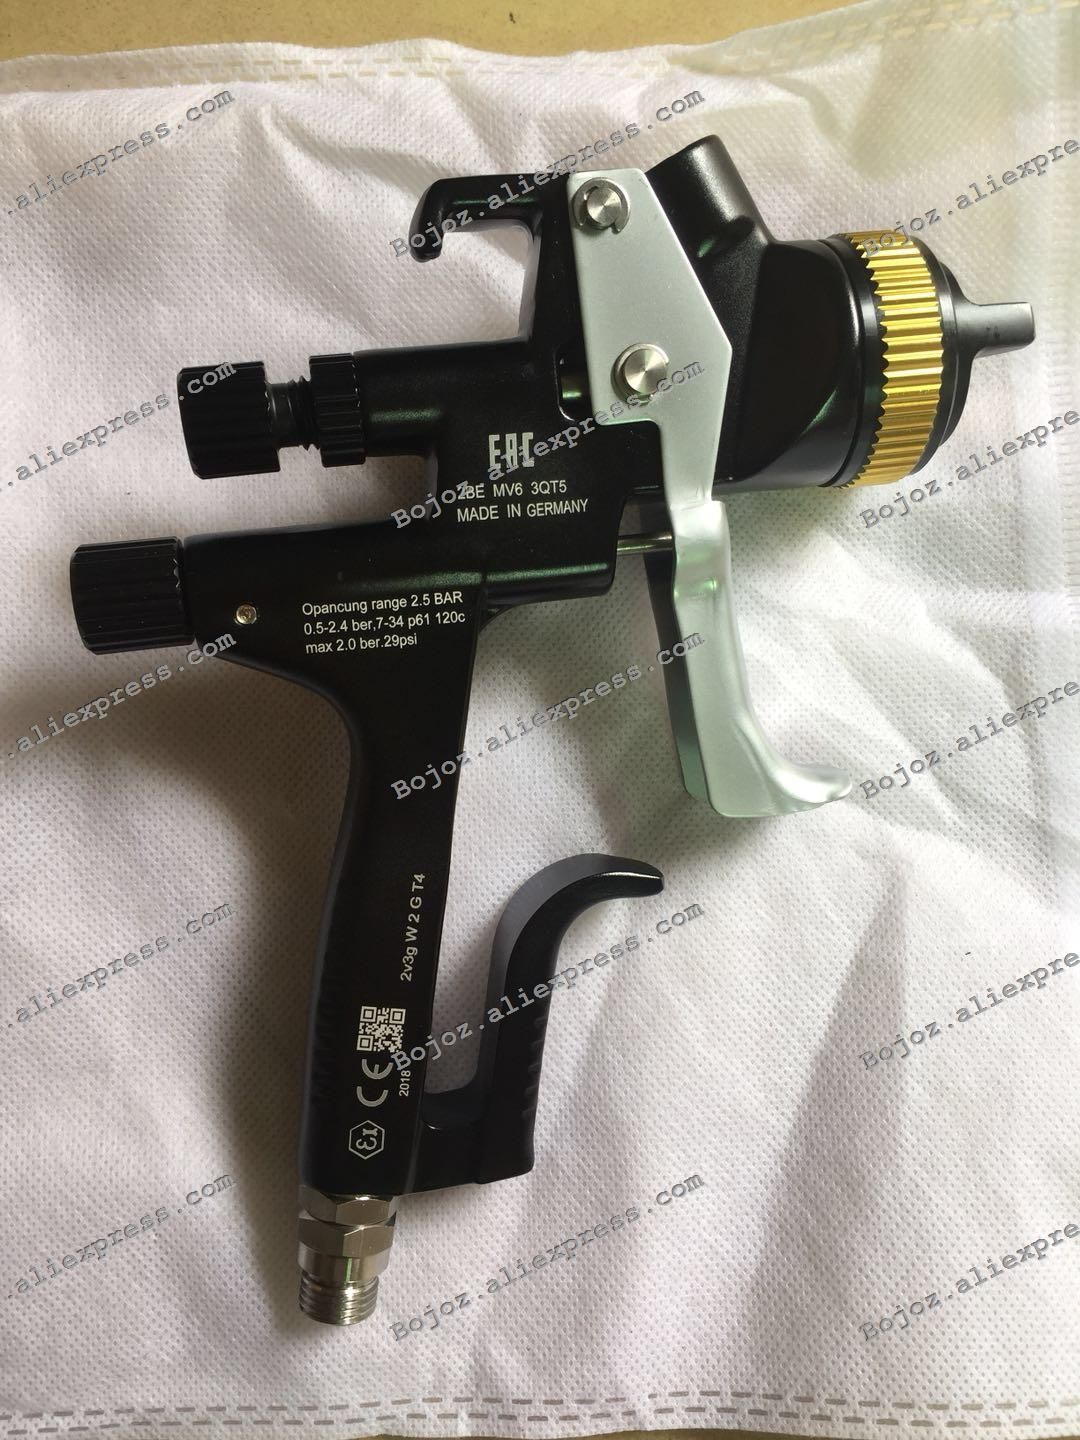 EAC Black Limited Edition 5000B HVLP PHASER Spray Gun-1.3 Noz w/t cup for Car,Porsche Design Painted Sprayer gun